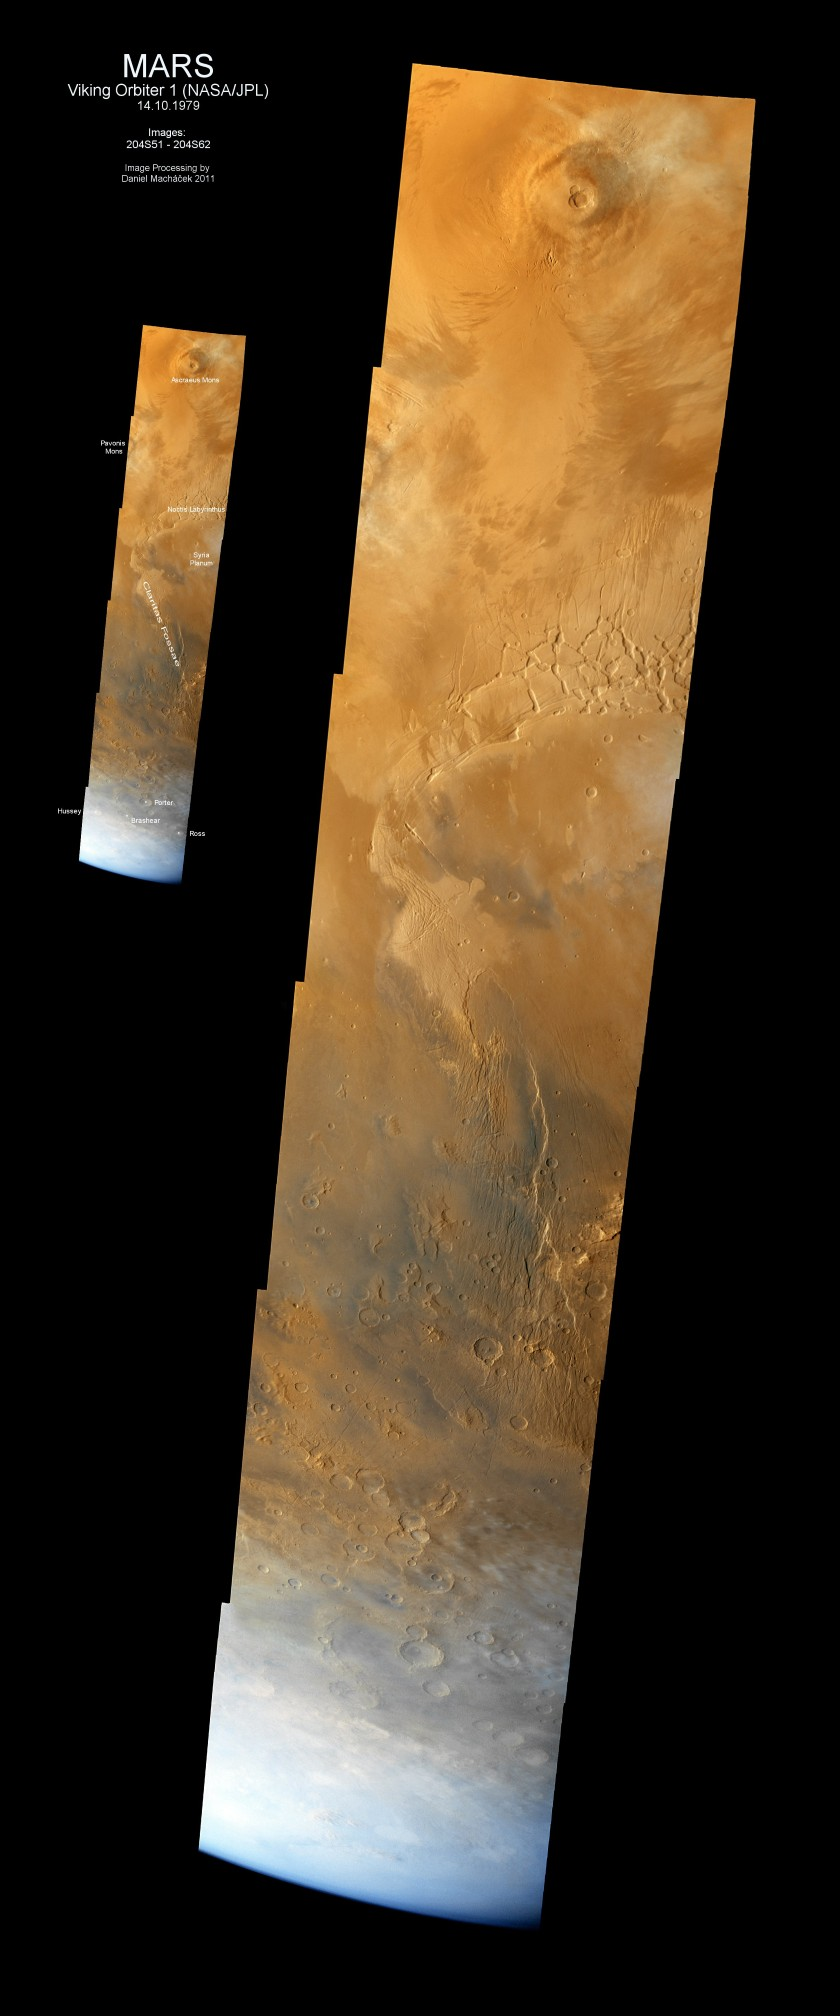 Viking 1 view of Mars' southern hemisphere from Olympus Mons to the pole